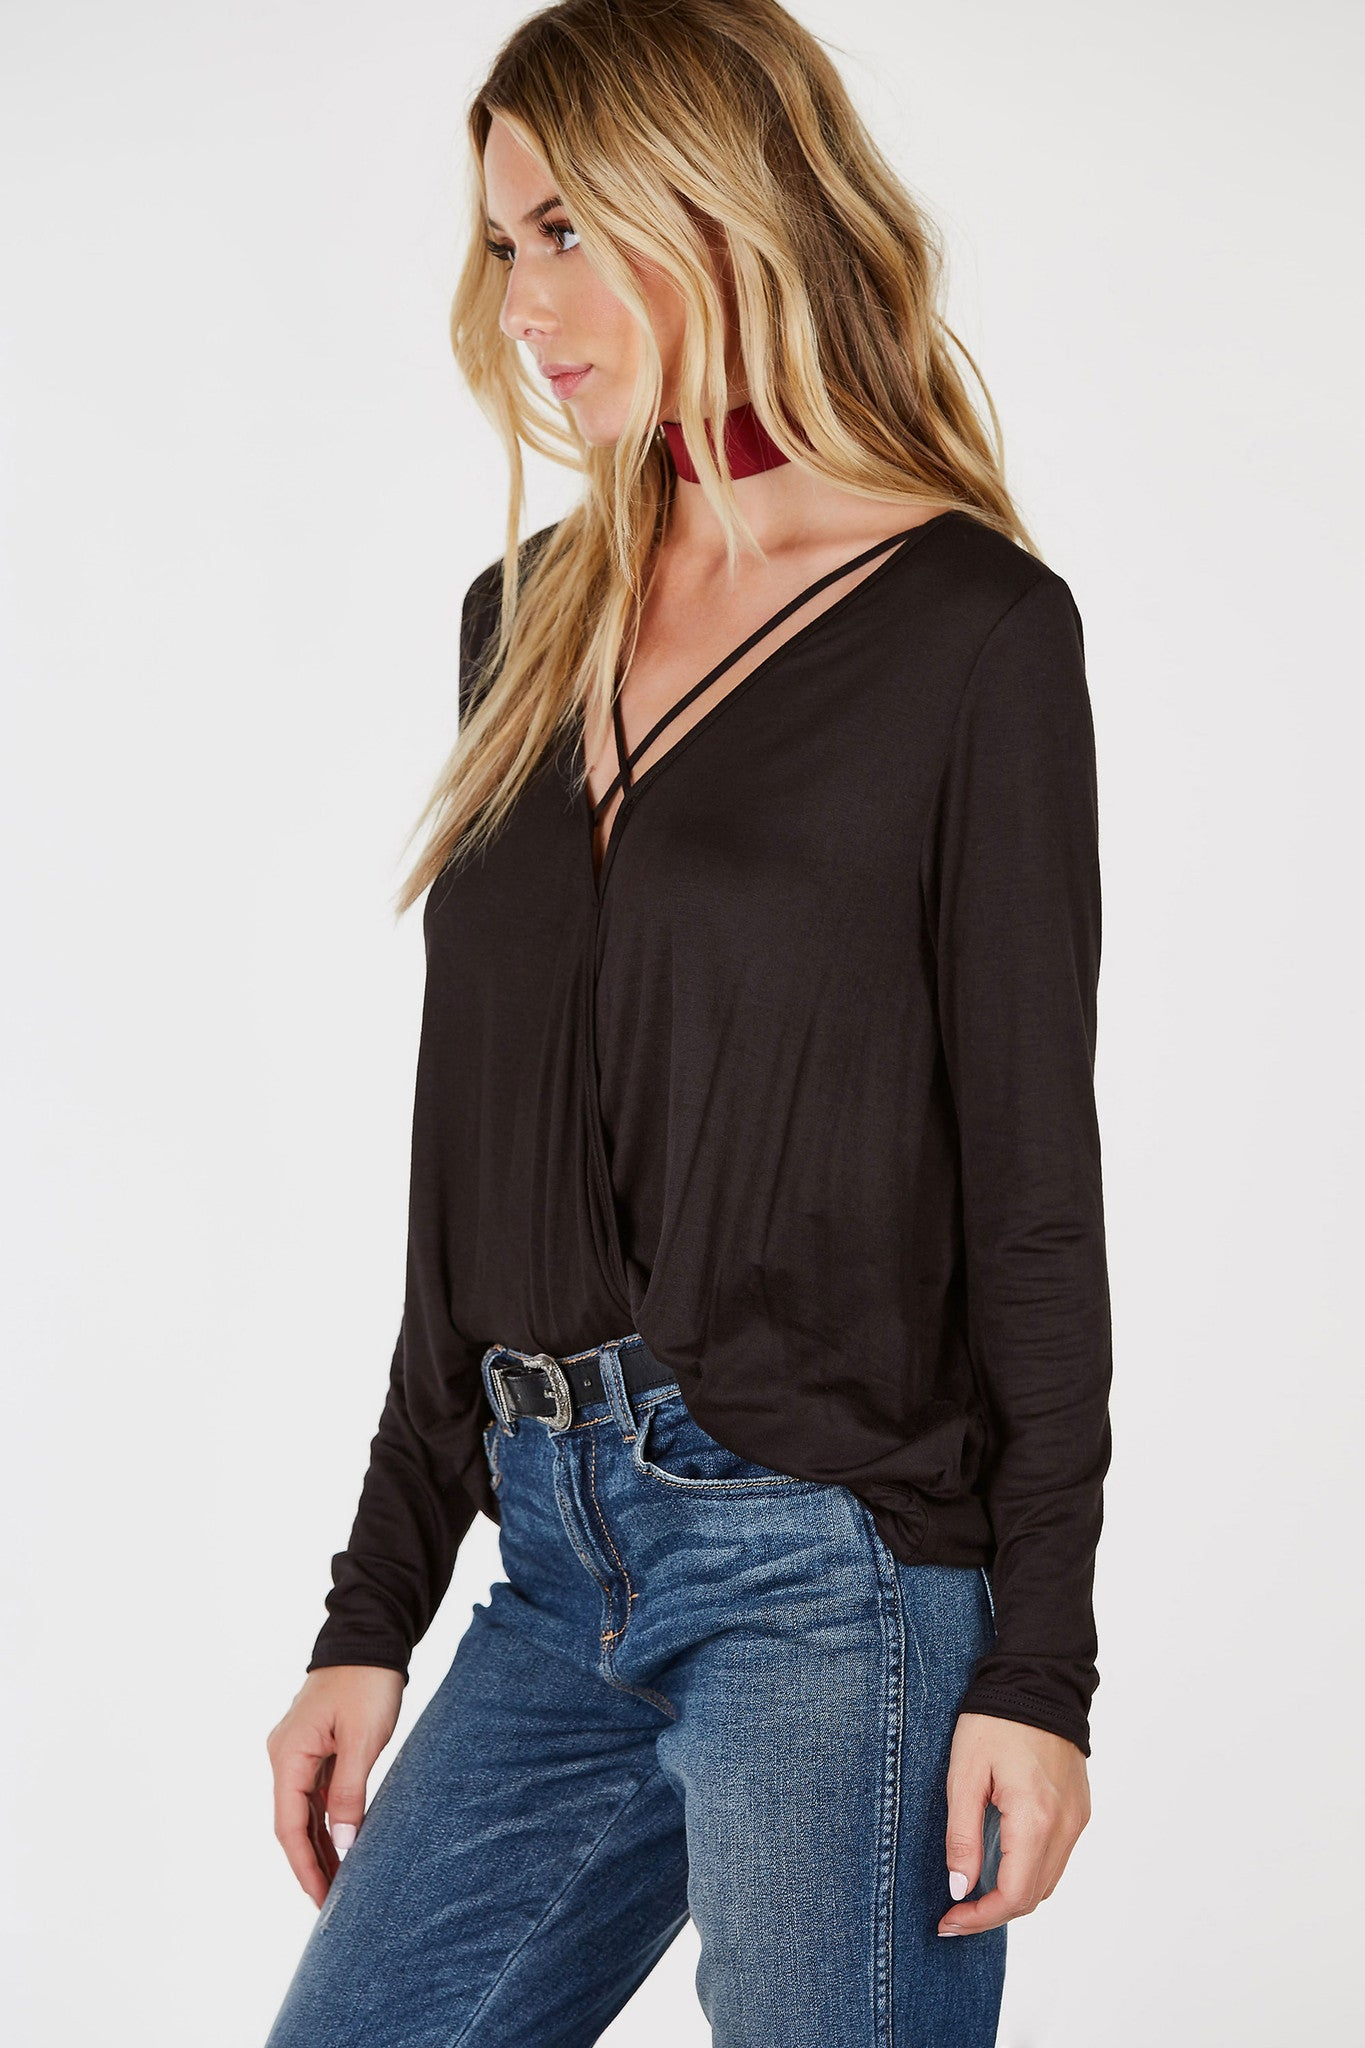 A soft lightweight top for your everyday, basic outfit. Fitted long sleeves with a relaxed body. Chic criss cross strap detailing with an overlap neckline. Draped finish in front with a longer rounded back. Style with skinny jeans and booties.